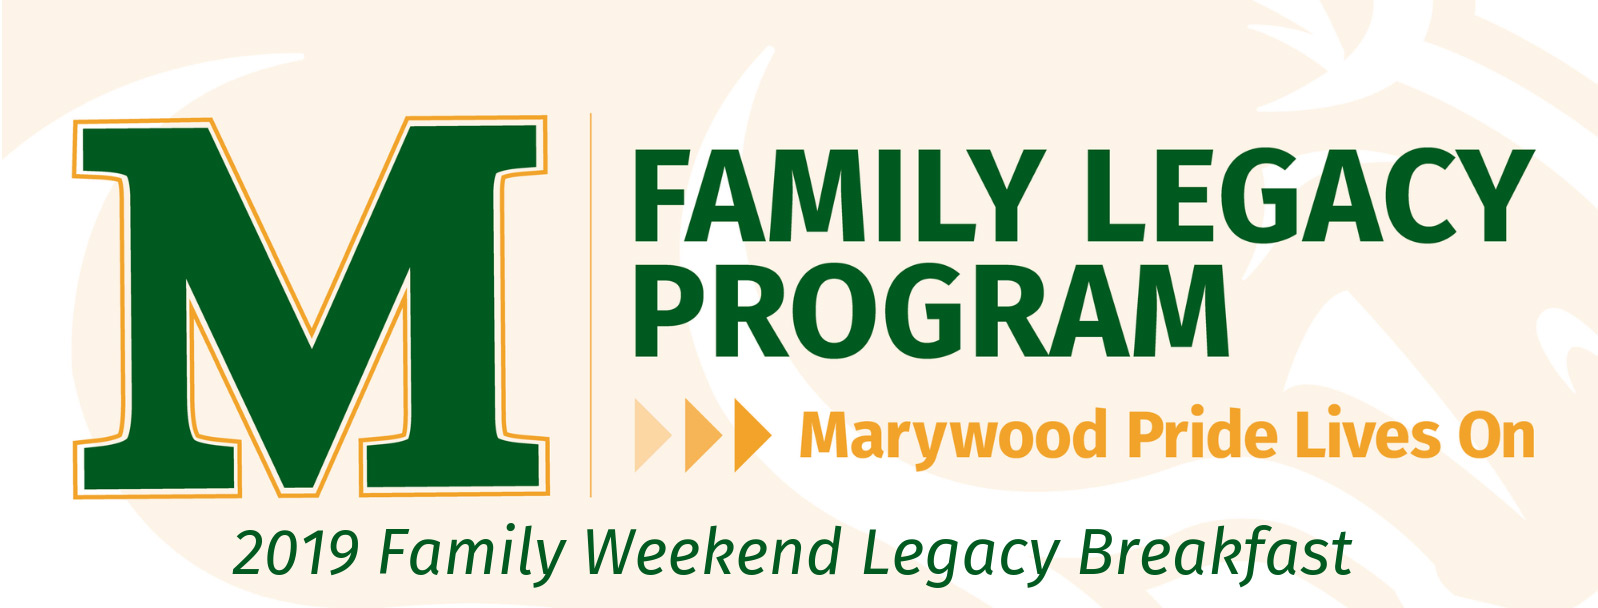 Marywood Legacy Family Breakfast 2019 - September 21st, 10-11:30 a.m.